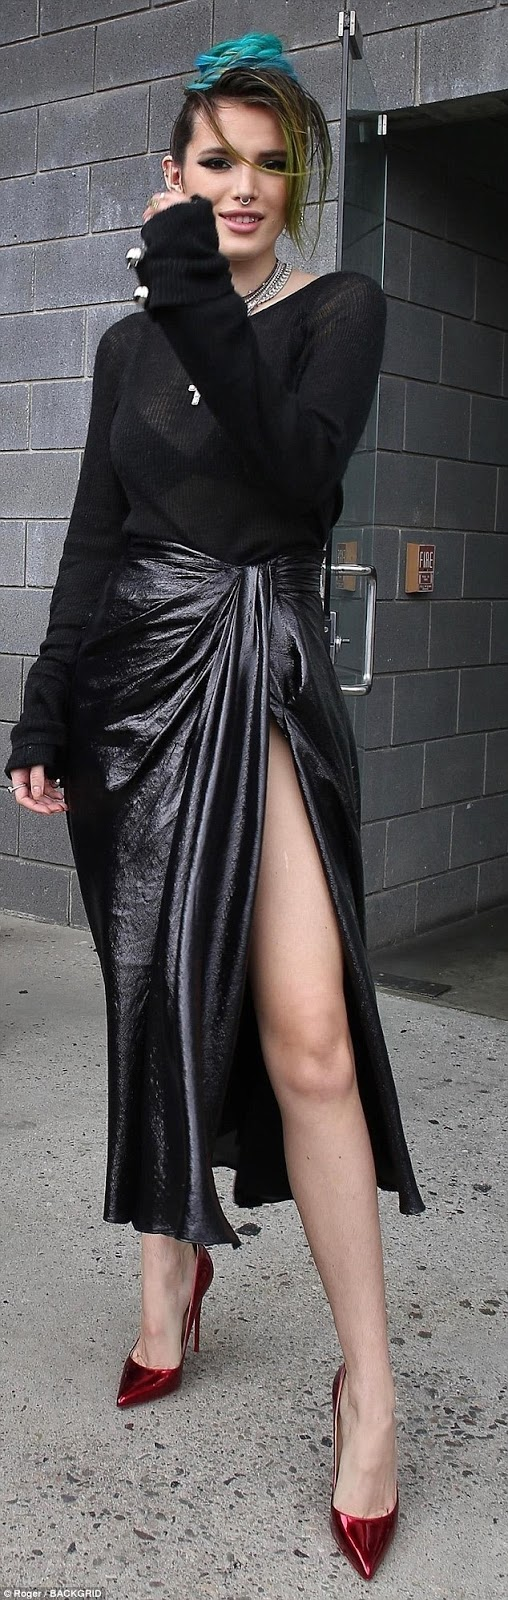 """Bella Thorne channels Madonna as she flashes her legs in a high-slit black skirt while out promoting """"I Still See You"""""""